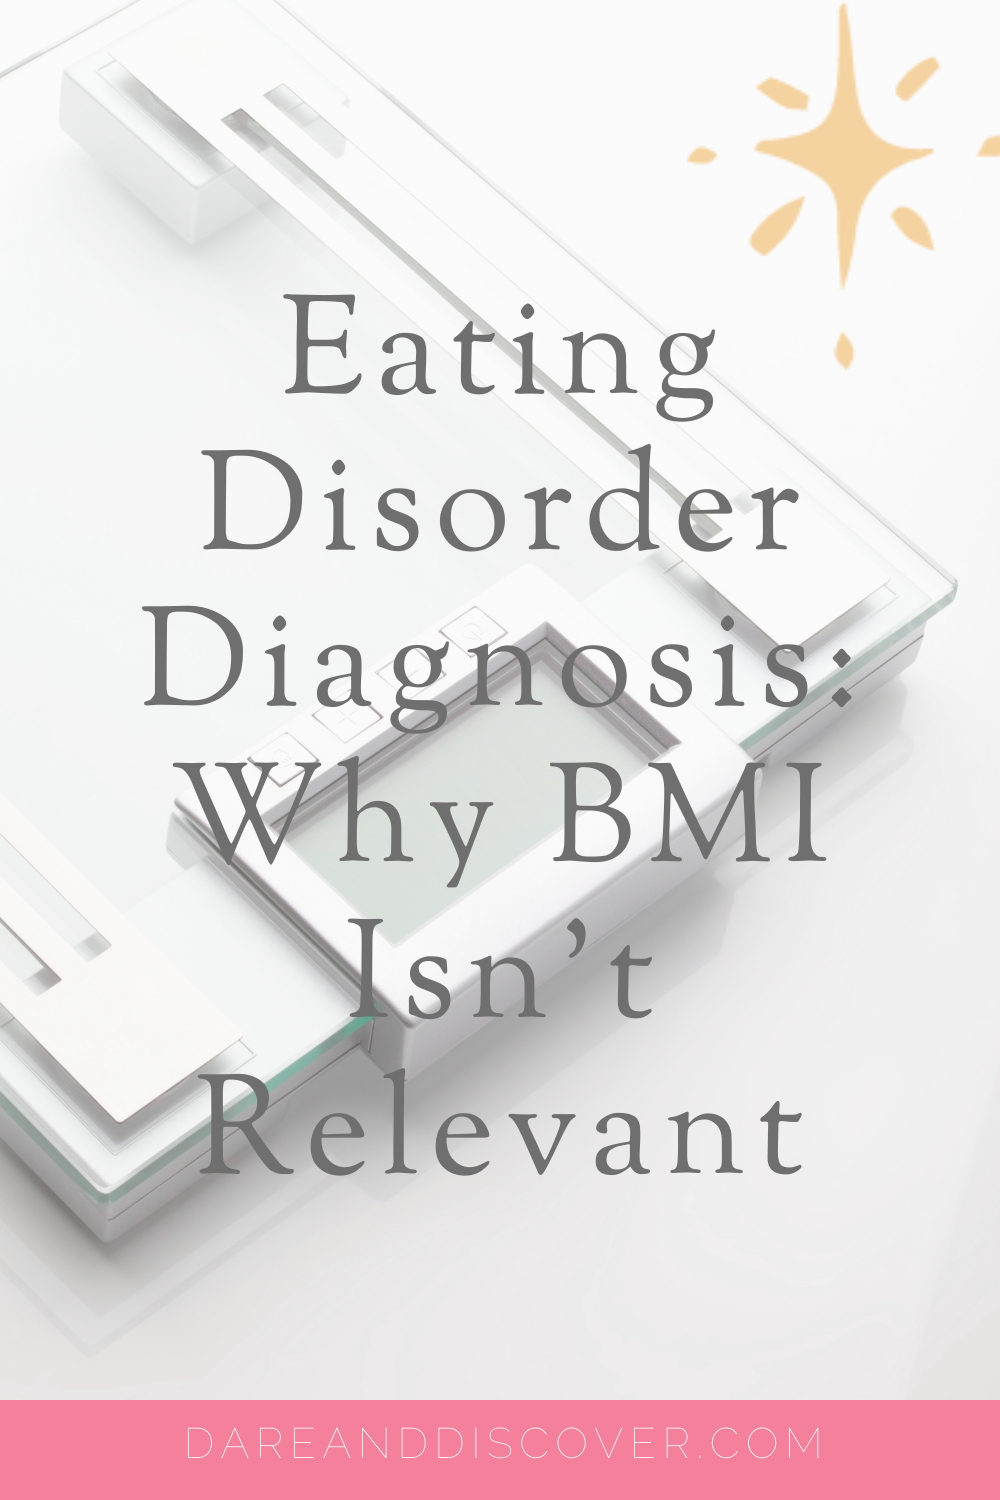 In order to receive an eating disorder diagnosis in the UK you need to be assessed by a trained professional and meet certain criteria. For Anorexia Nervosa, one of the criteria for this eating disorder diagnosis is that the person's Body Mass Index (BMI) is below a certain level. I explain why I think it's inappropriate to use BMI as one of the criteria for an eating disorder diagnosis | Eating Disorder Diagnosis | Anorexia Nervosa | The Scale Lies | #EatingDisorder #Anorexia